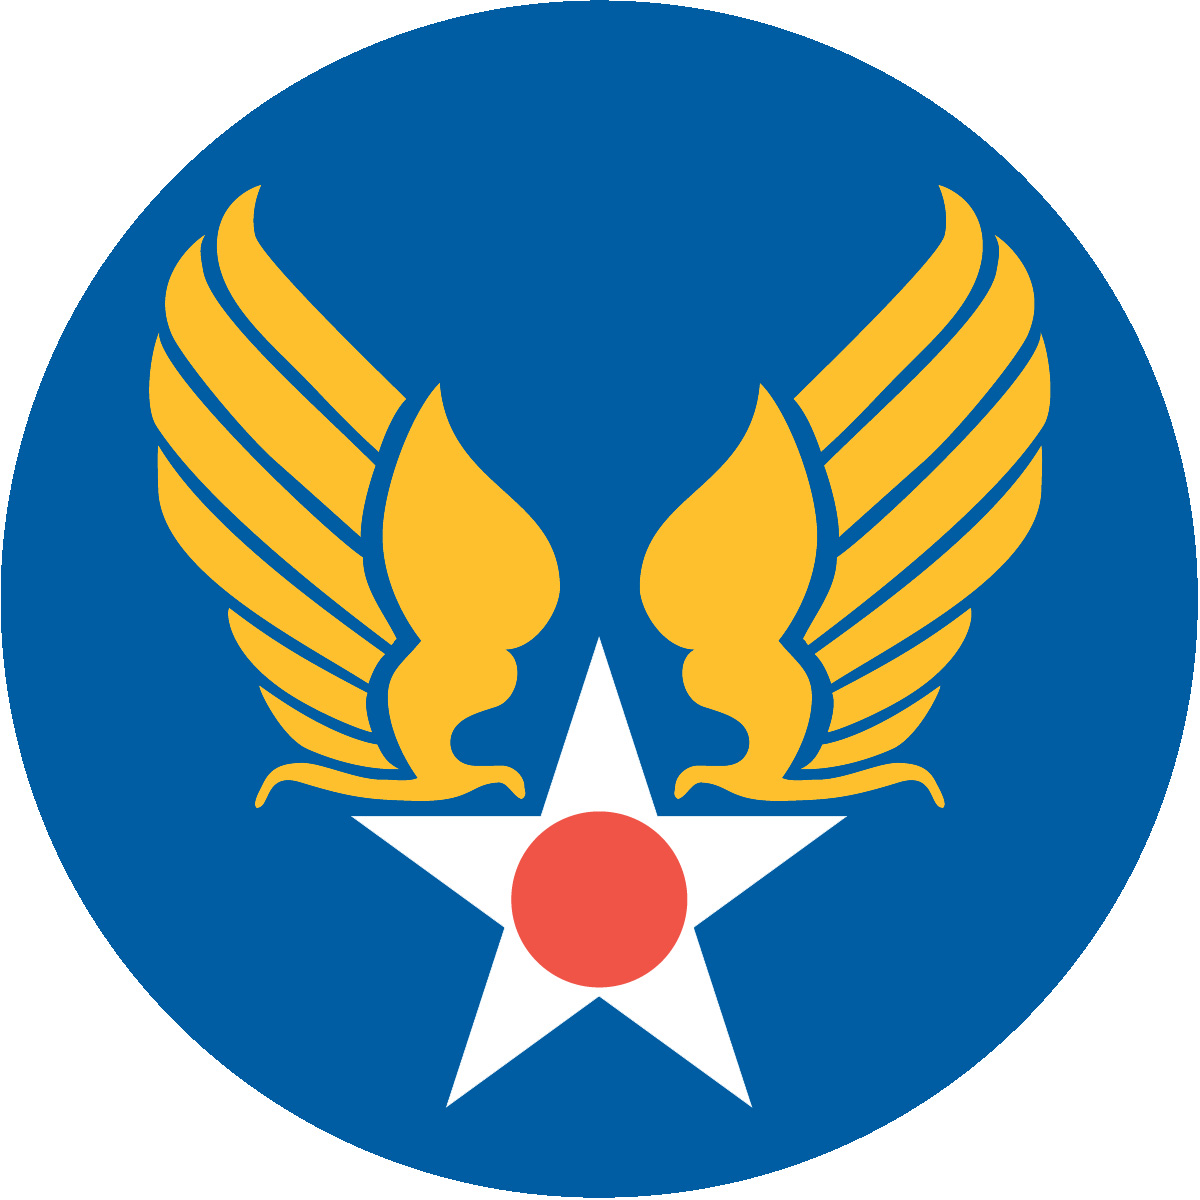 The View Is Askew 73 Air Force Motto Searching For An Identity